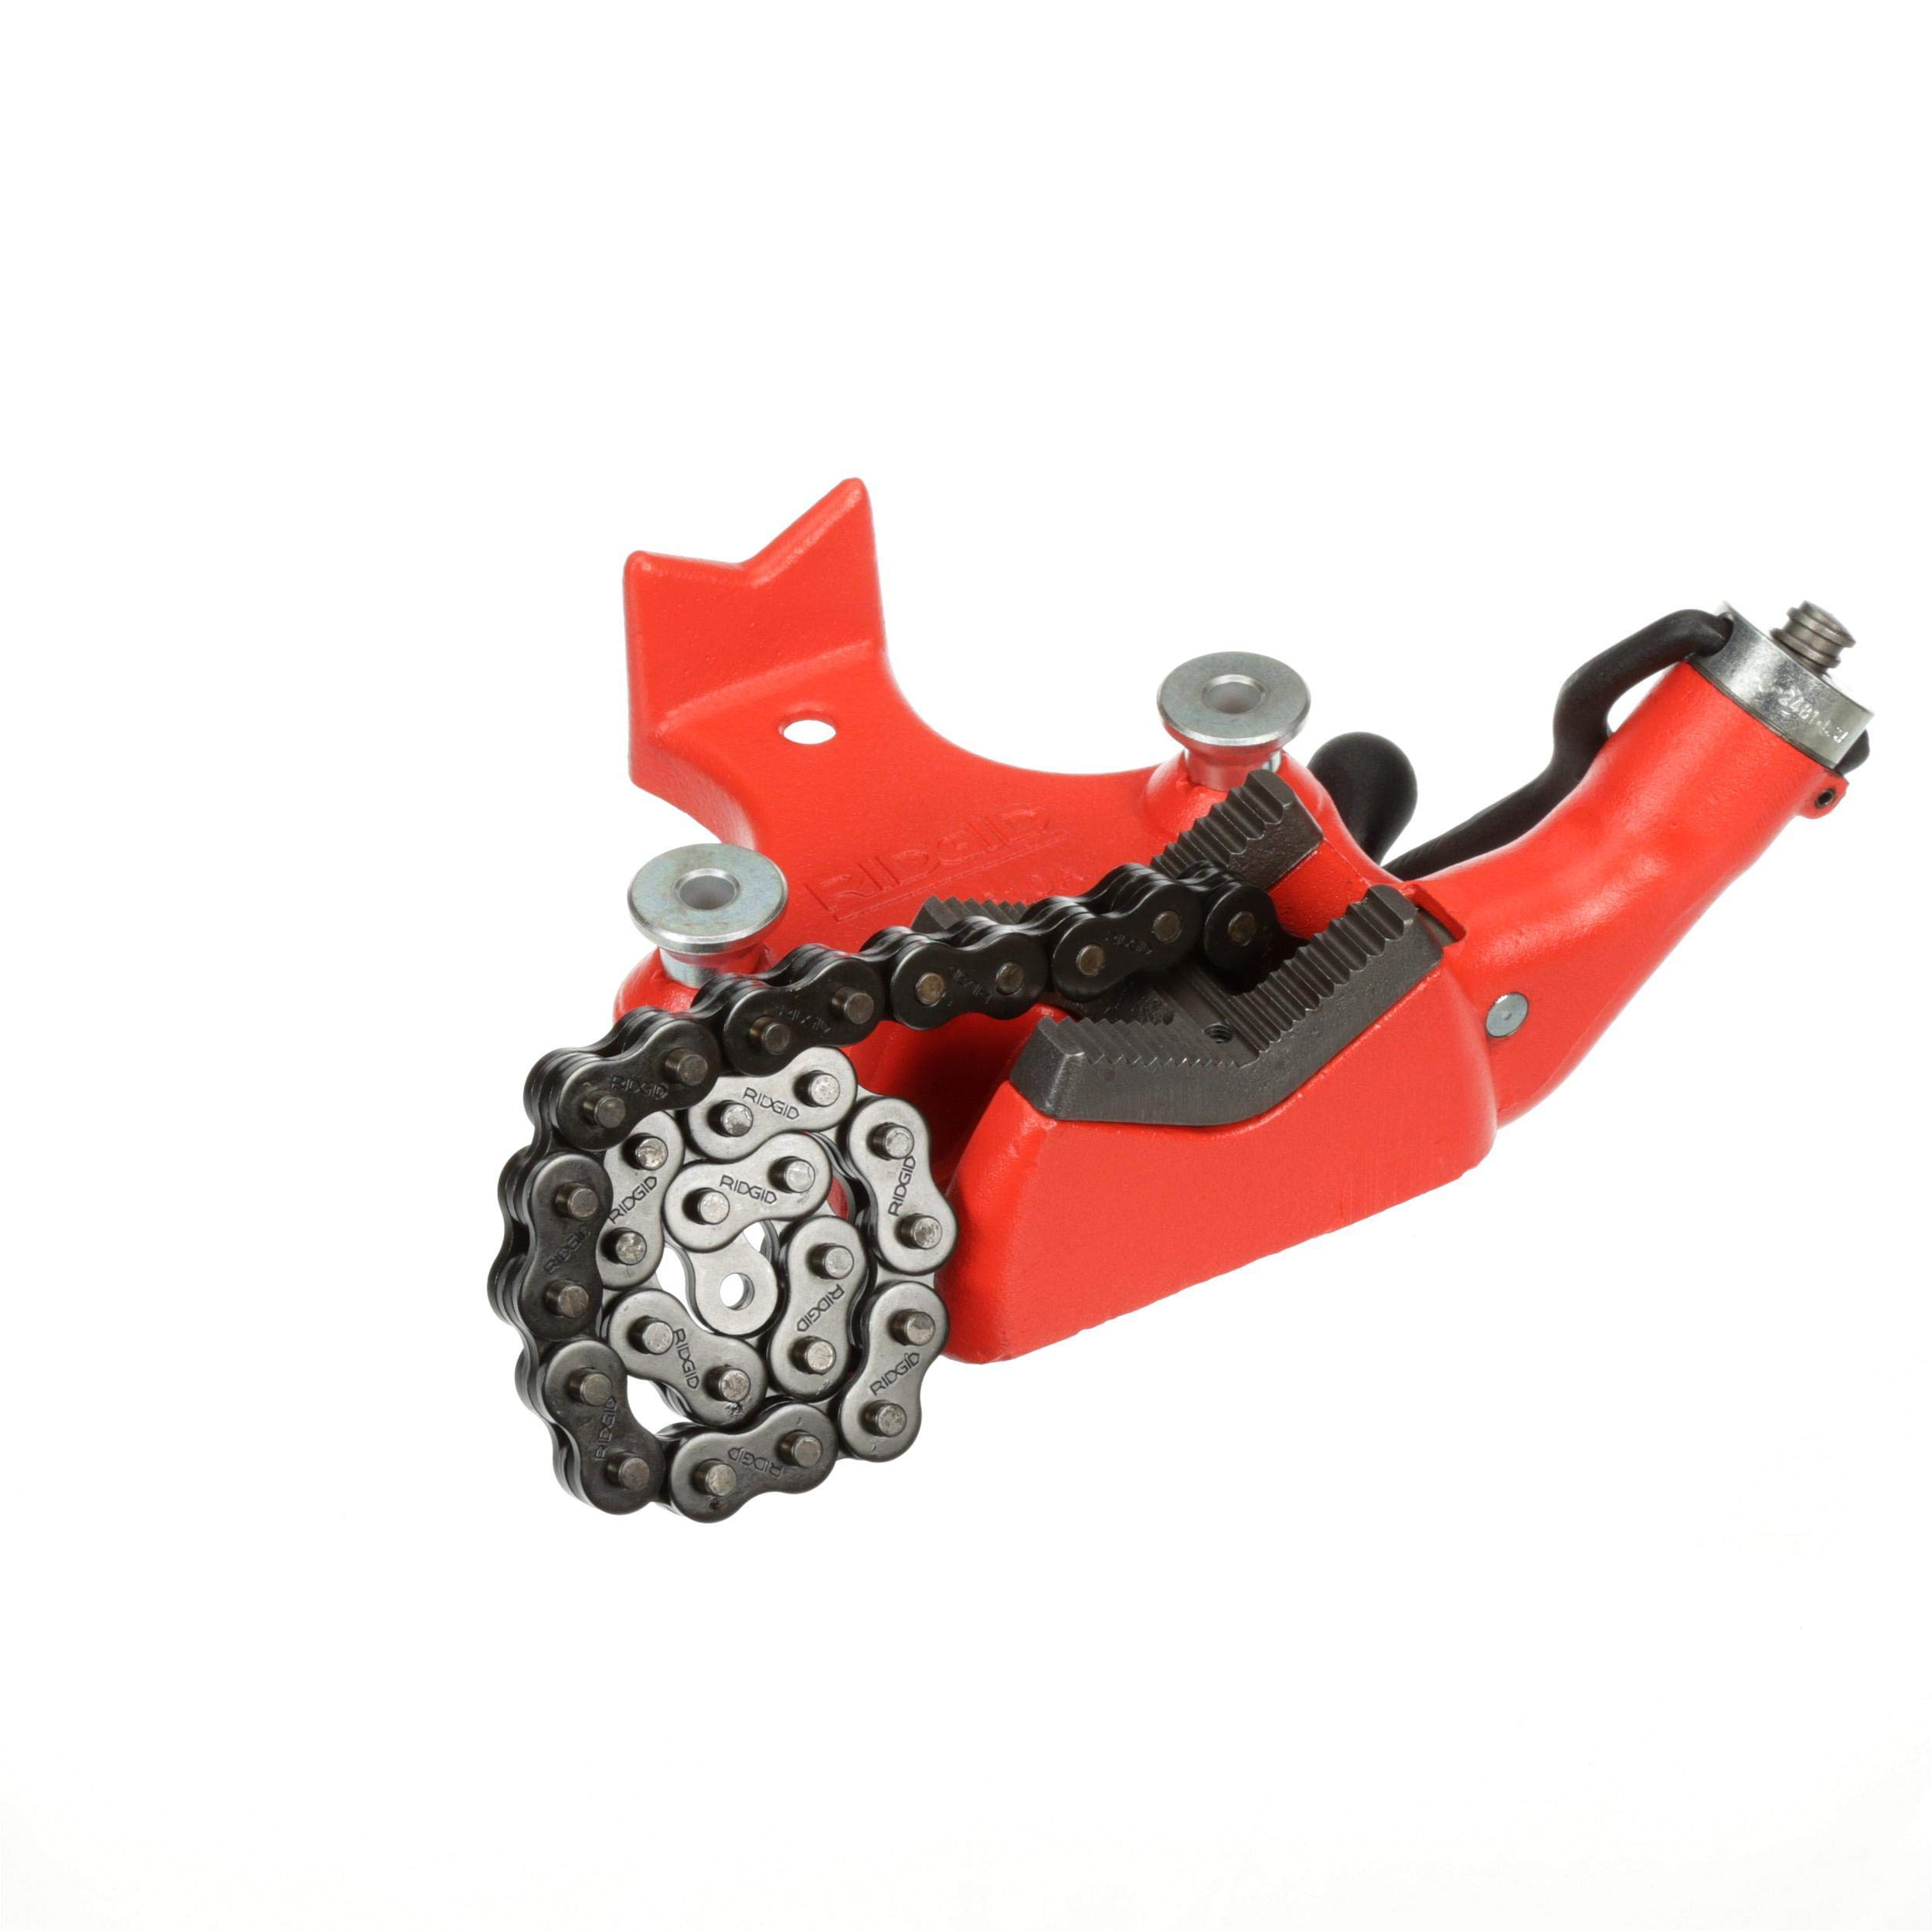 RIDGID 40210 Model BC610 Top Screw Bench Chain Vise, 1/4-inch to 6-inch Bench Vise